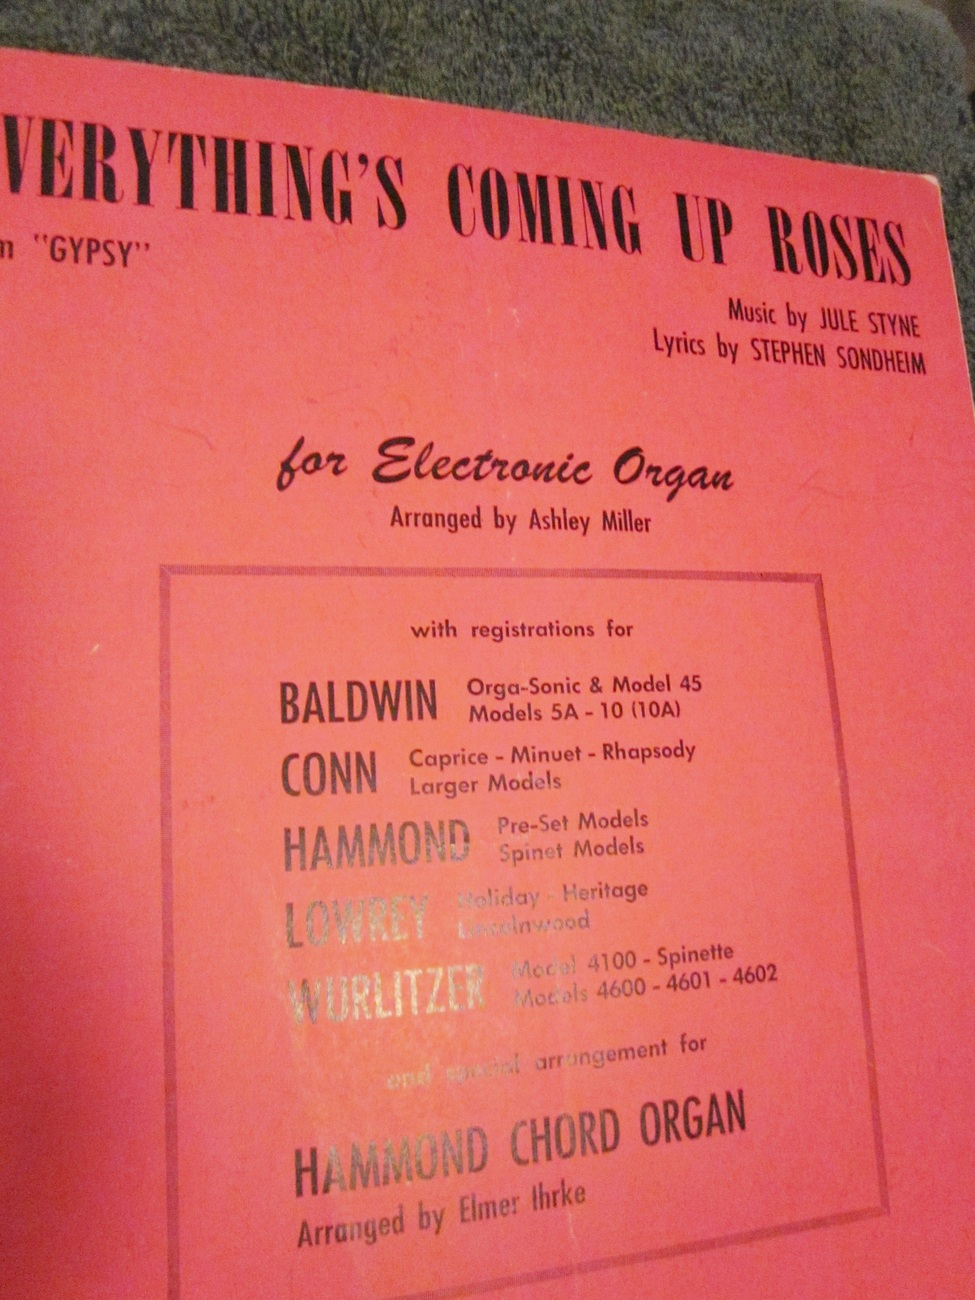 Sheet Music Everythings Coming Up Roses from Gypsy for the Organ